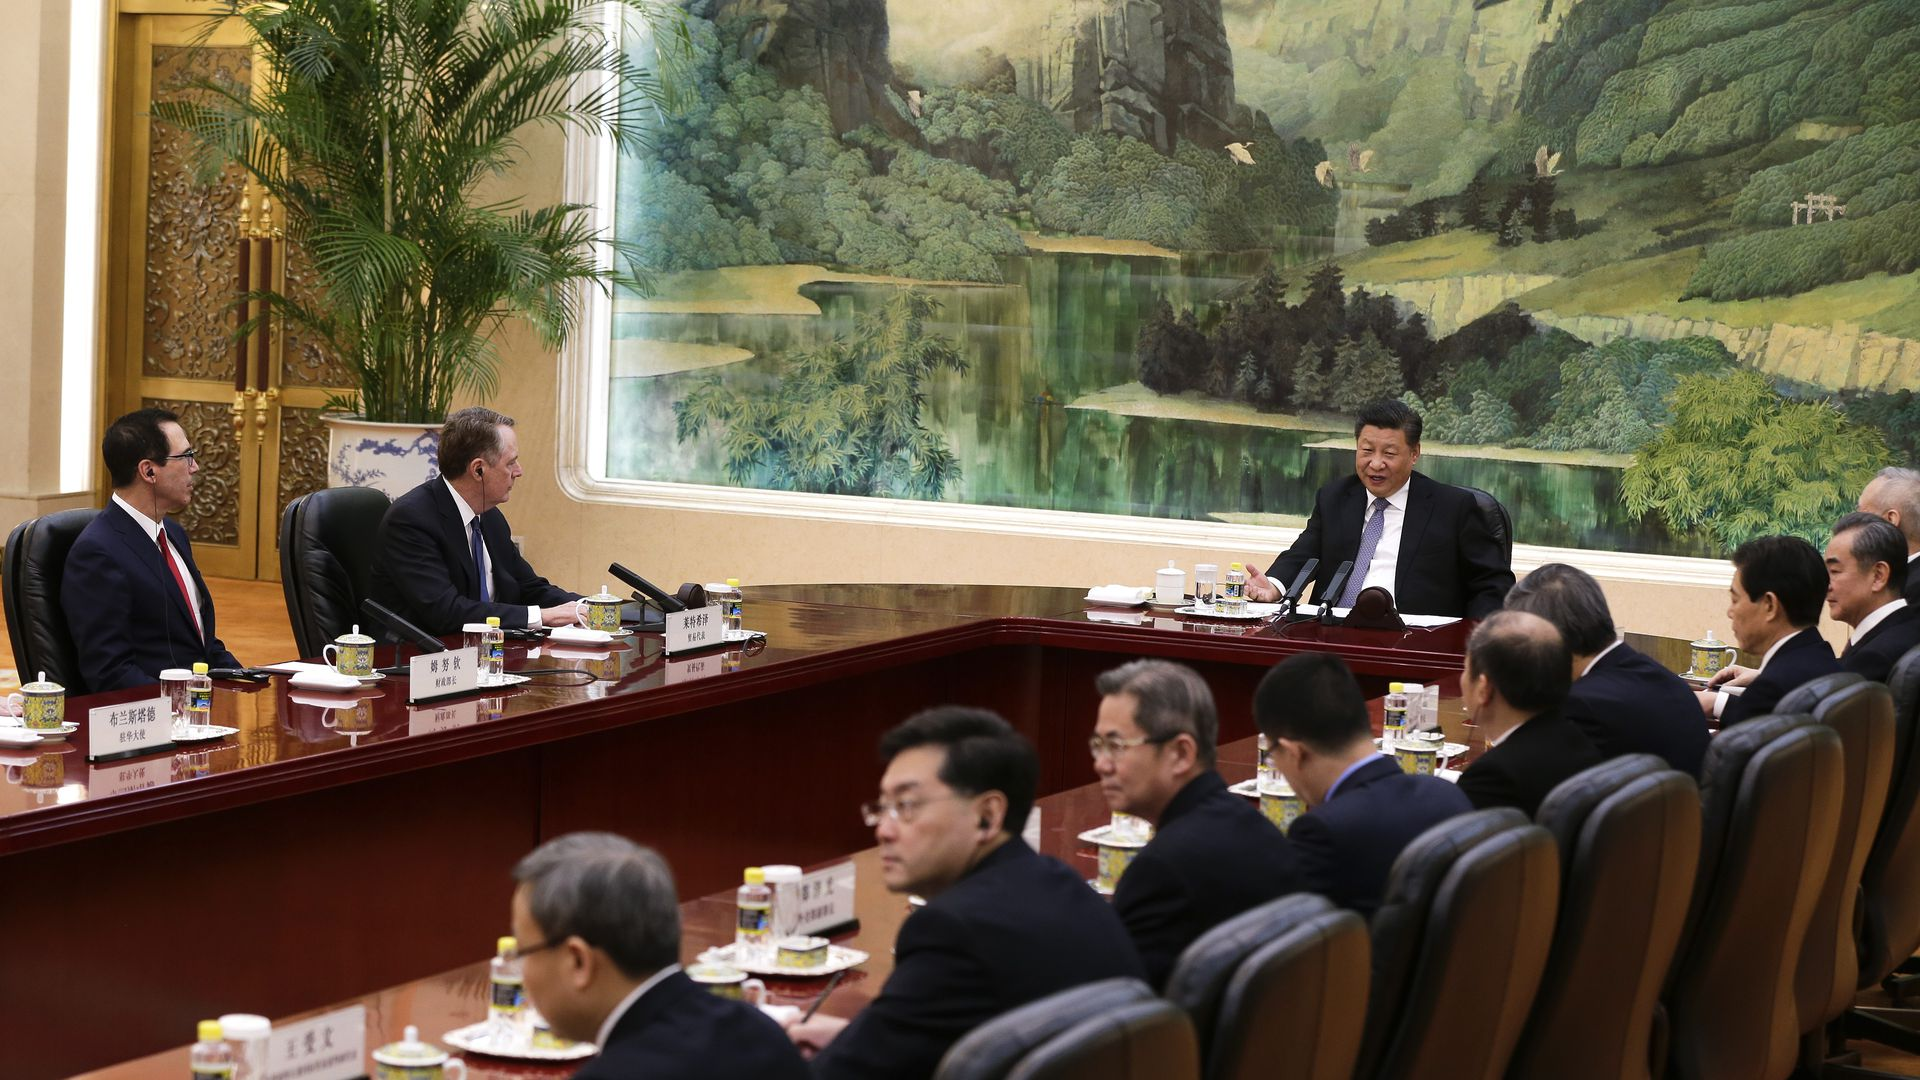 Photo from trade talks in Beijing with President Xi and USTR Lighthizer